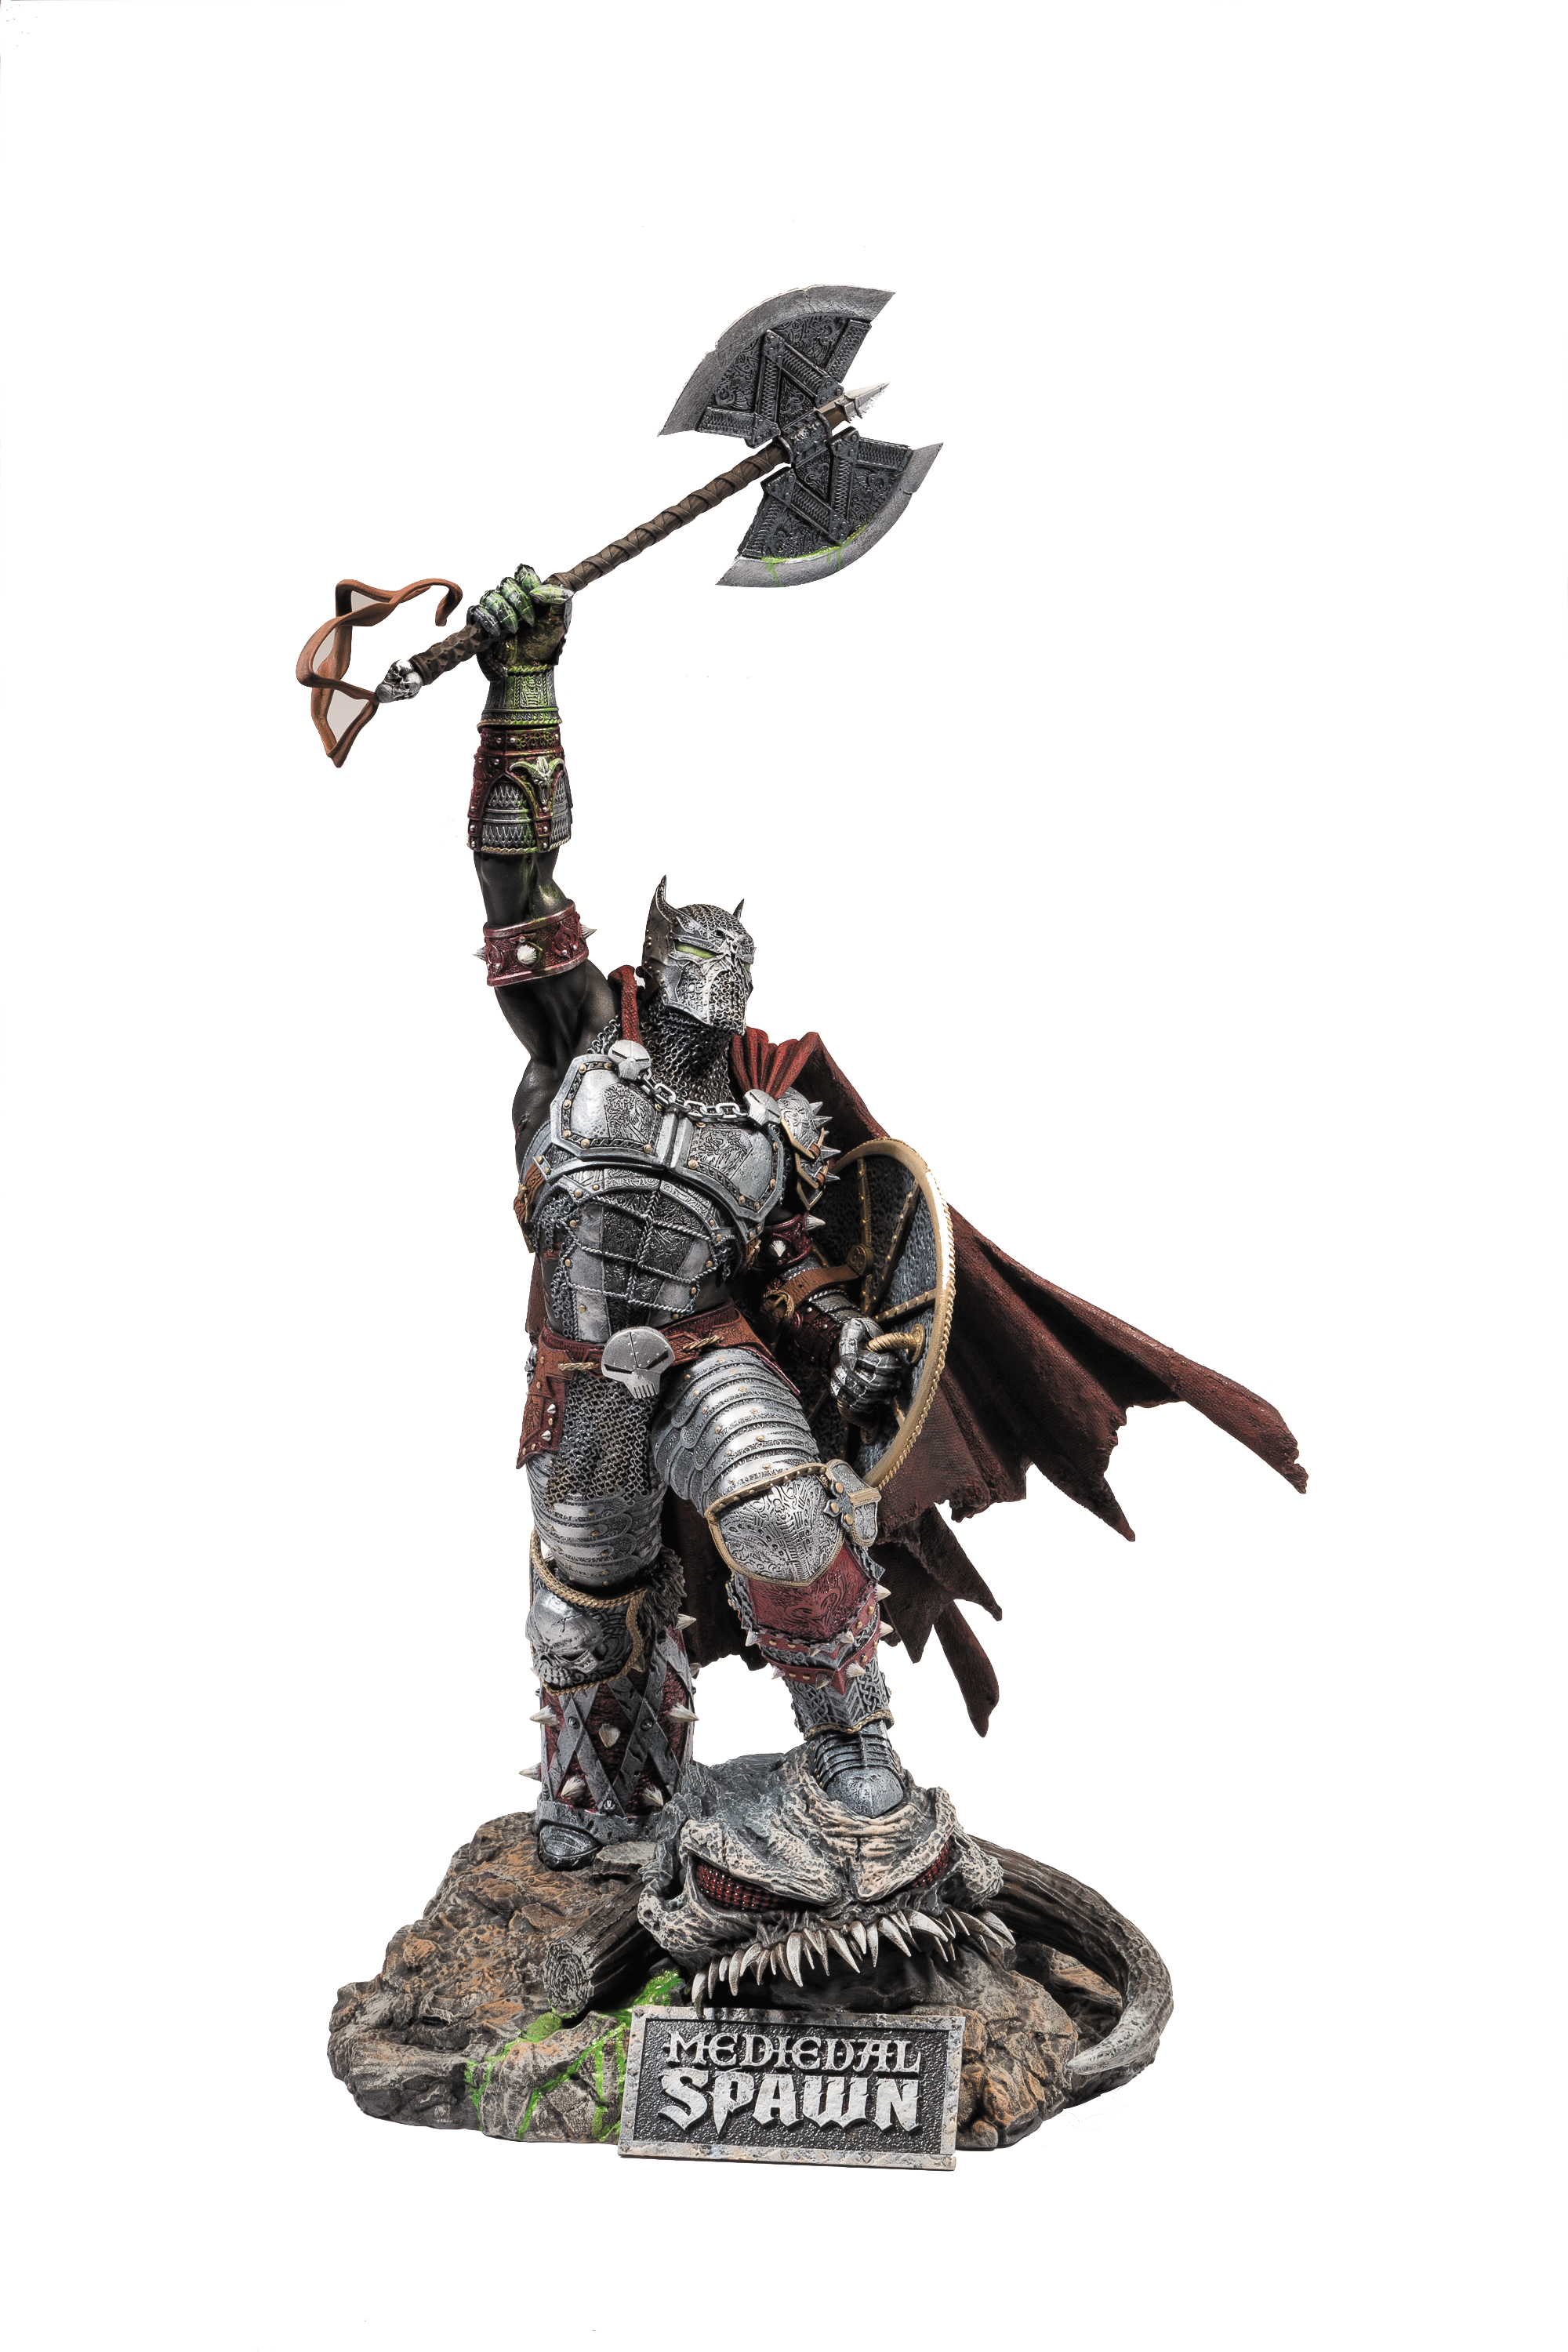 mcfarlane-medieval-spawn-limited-statue-toyslife